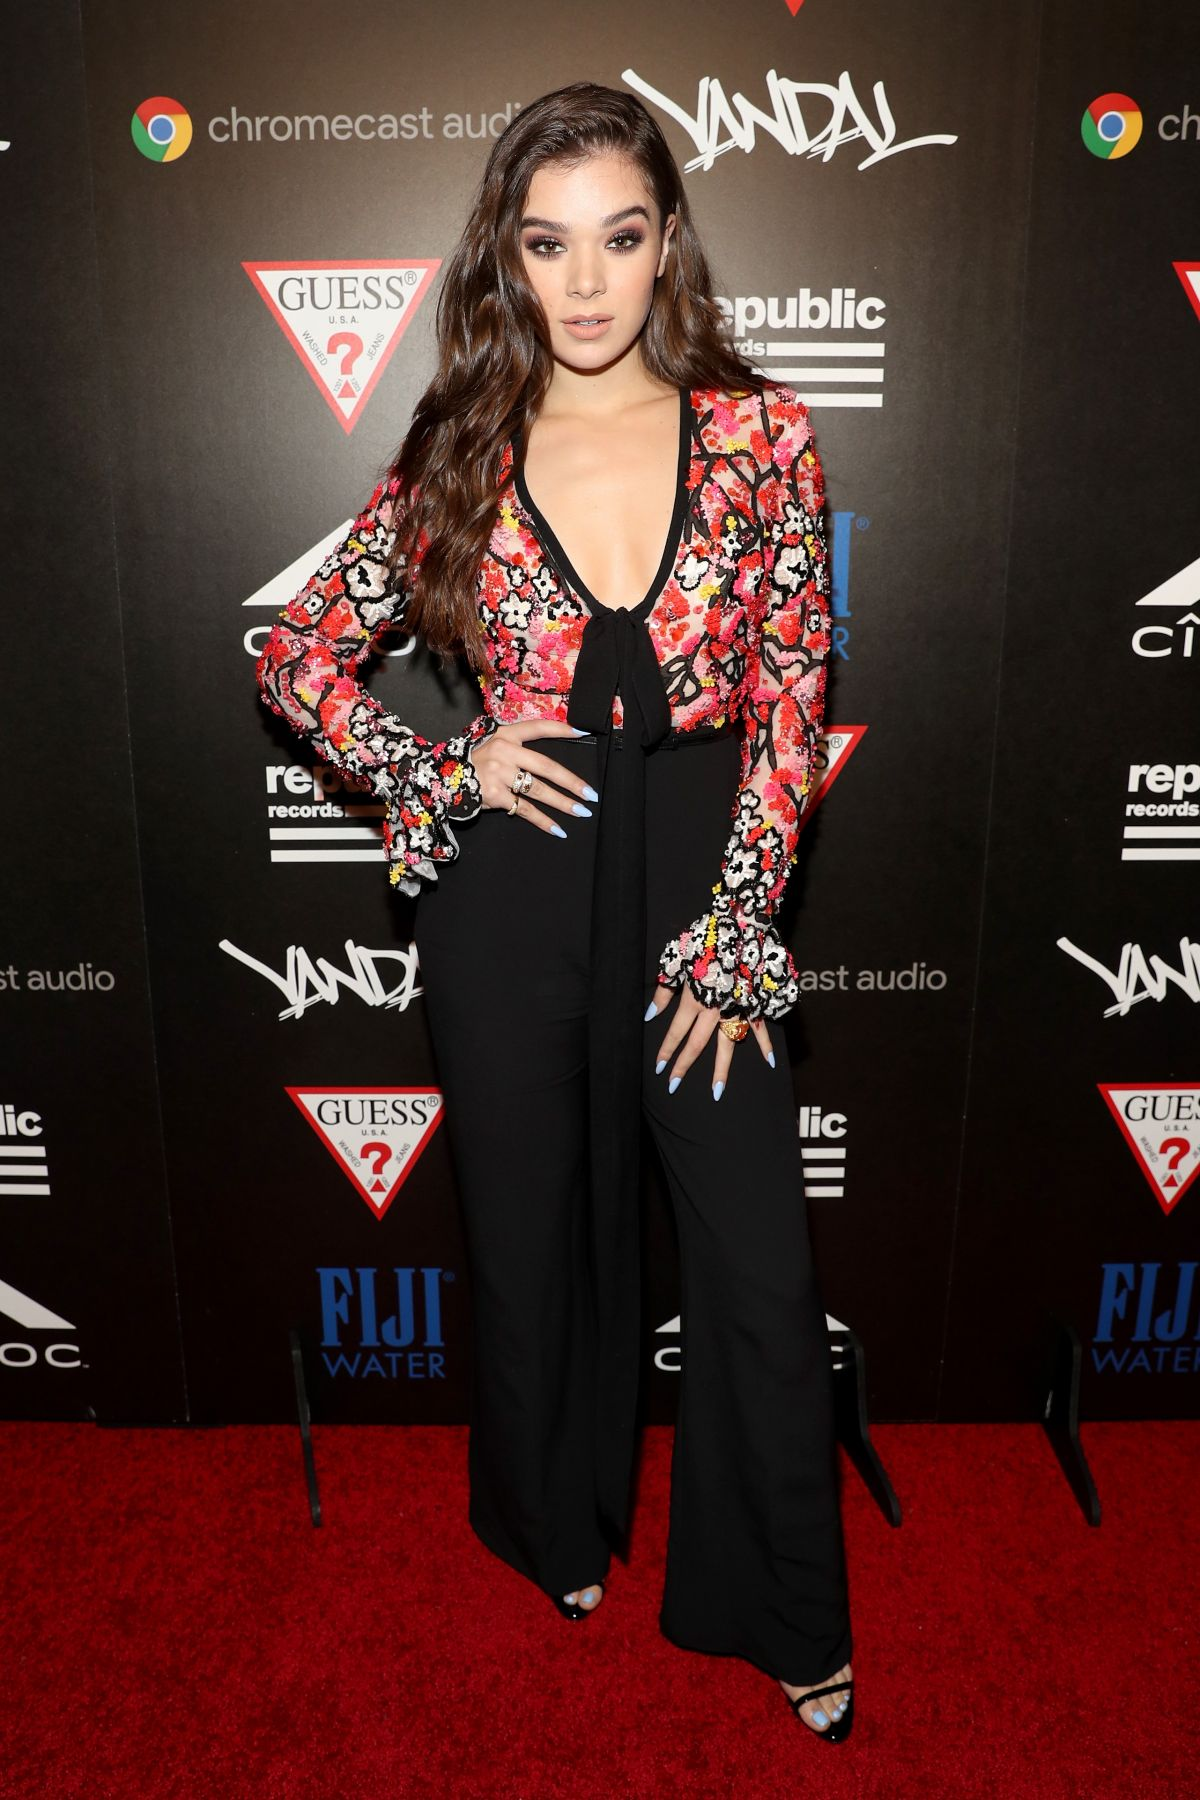 HAILEE STEINFELD at 2016 MTV VMA Republic Records Afterparty in New York 08/28/2016